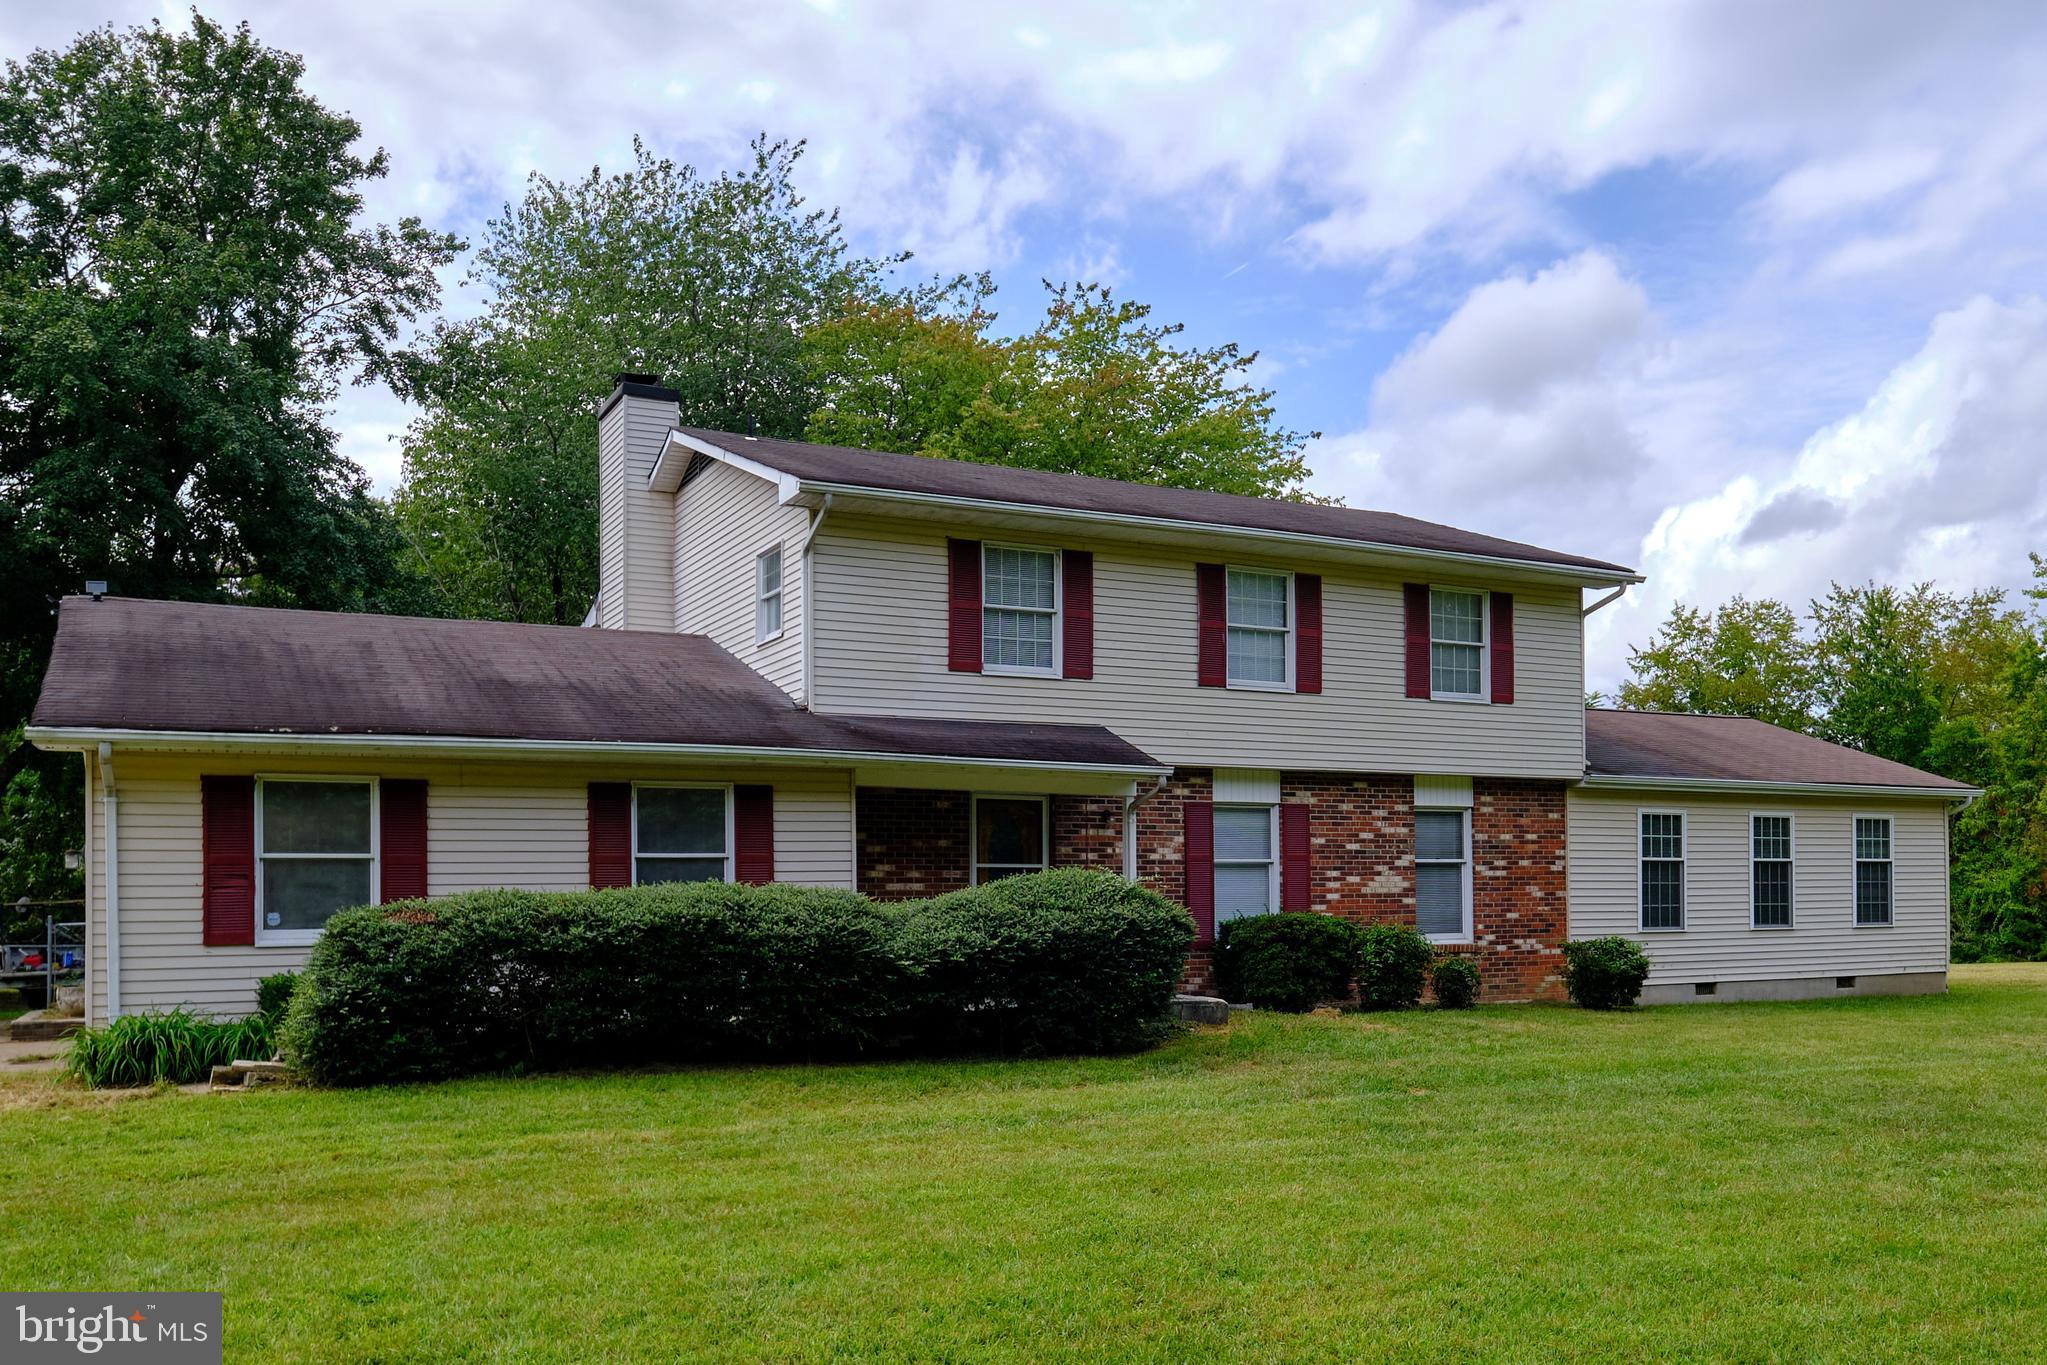 5 bedroom, 3.5 bath Colonial, conveniently located in Greenridge Subdivision, featuring a master bed